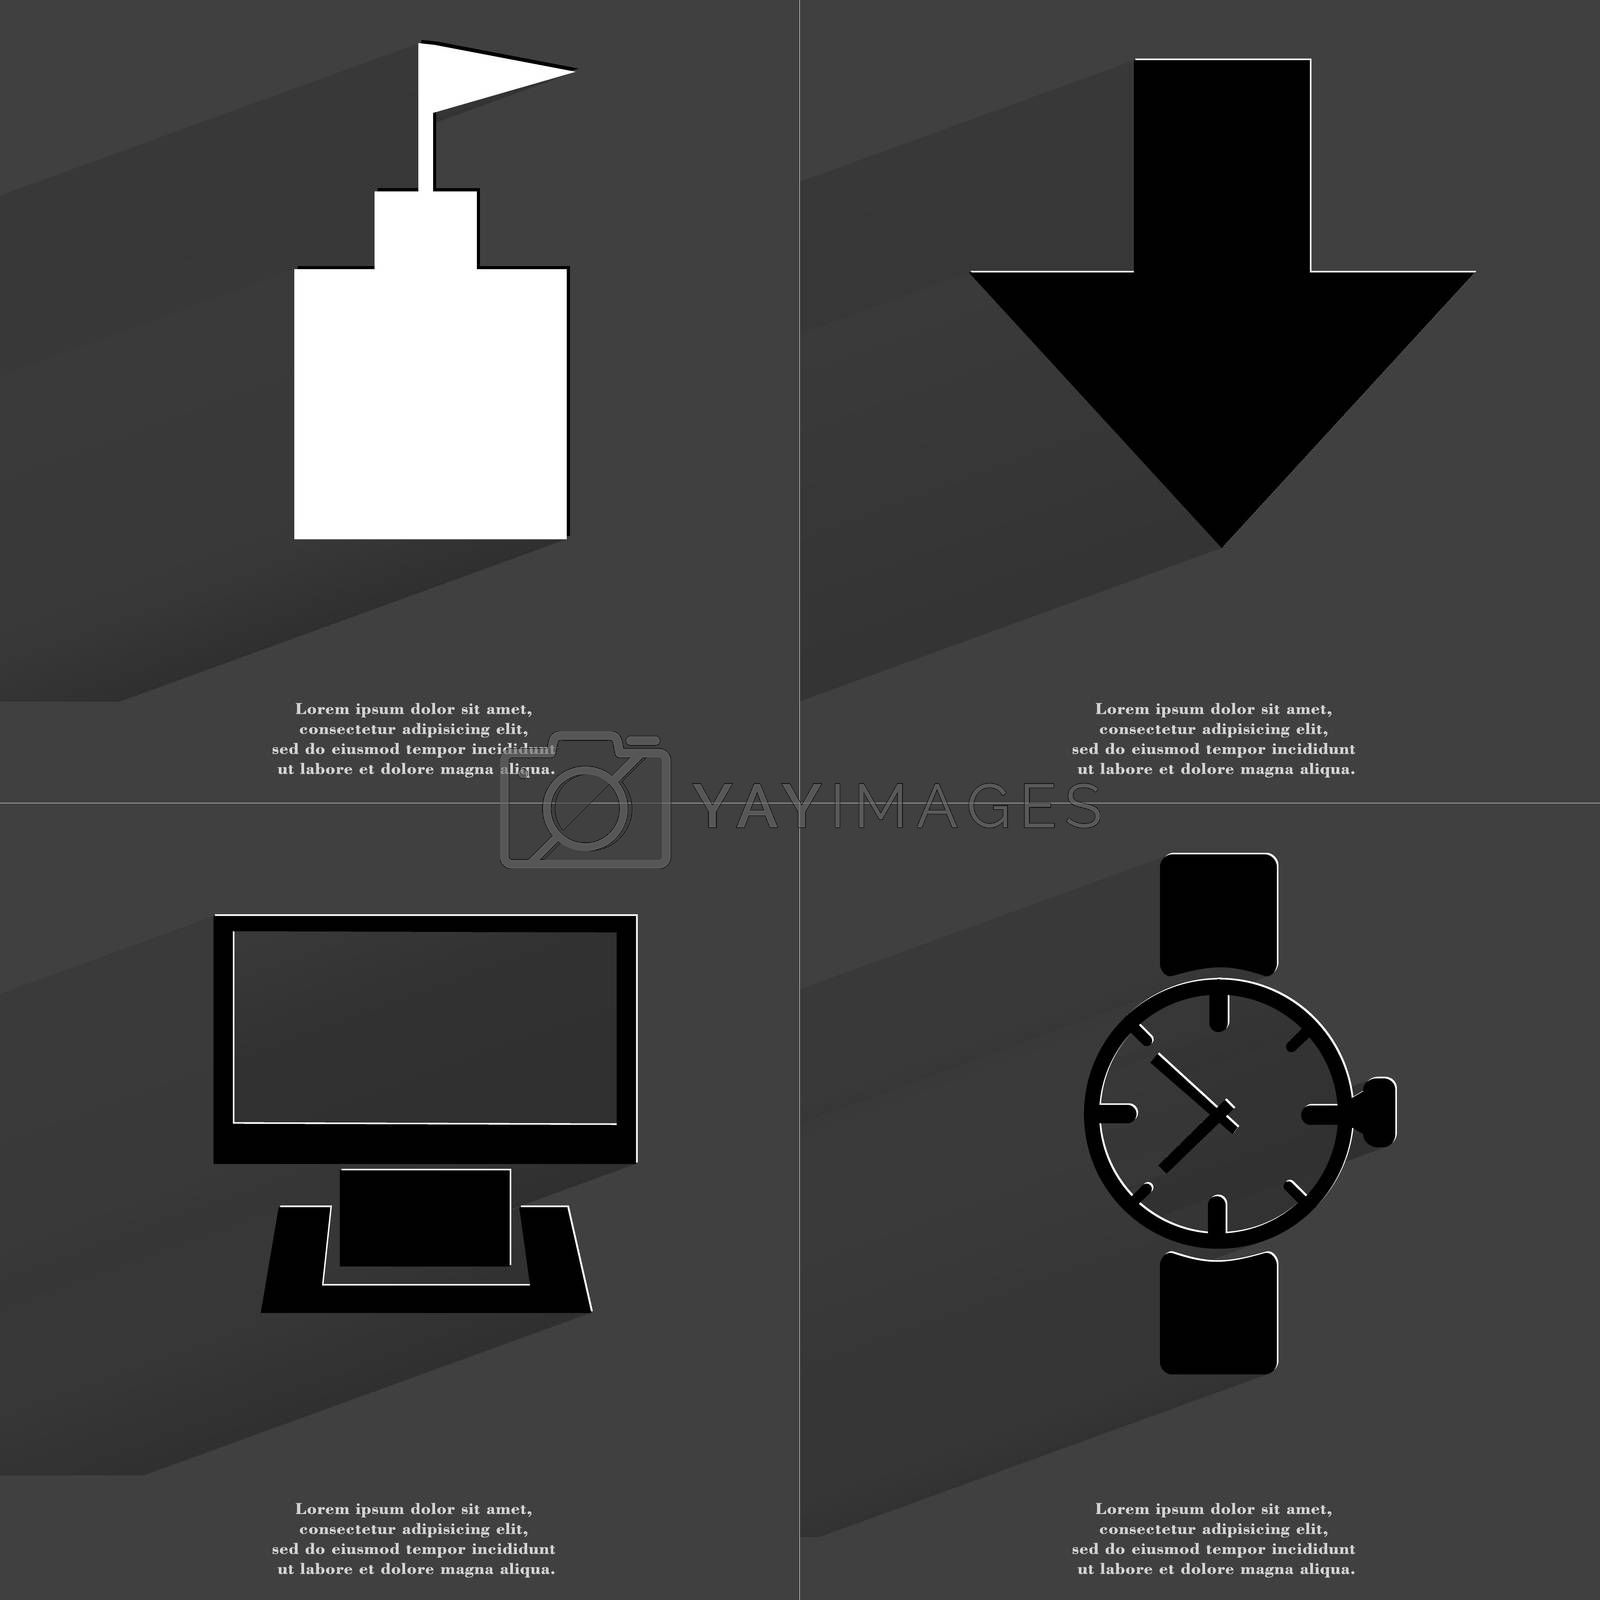 Royalty free image of Flag tower, Arrow directed down, Monitor, Wrist watch. Symbols with long shadow. Flat design by serhii_lohvyniuk